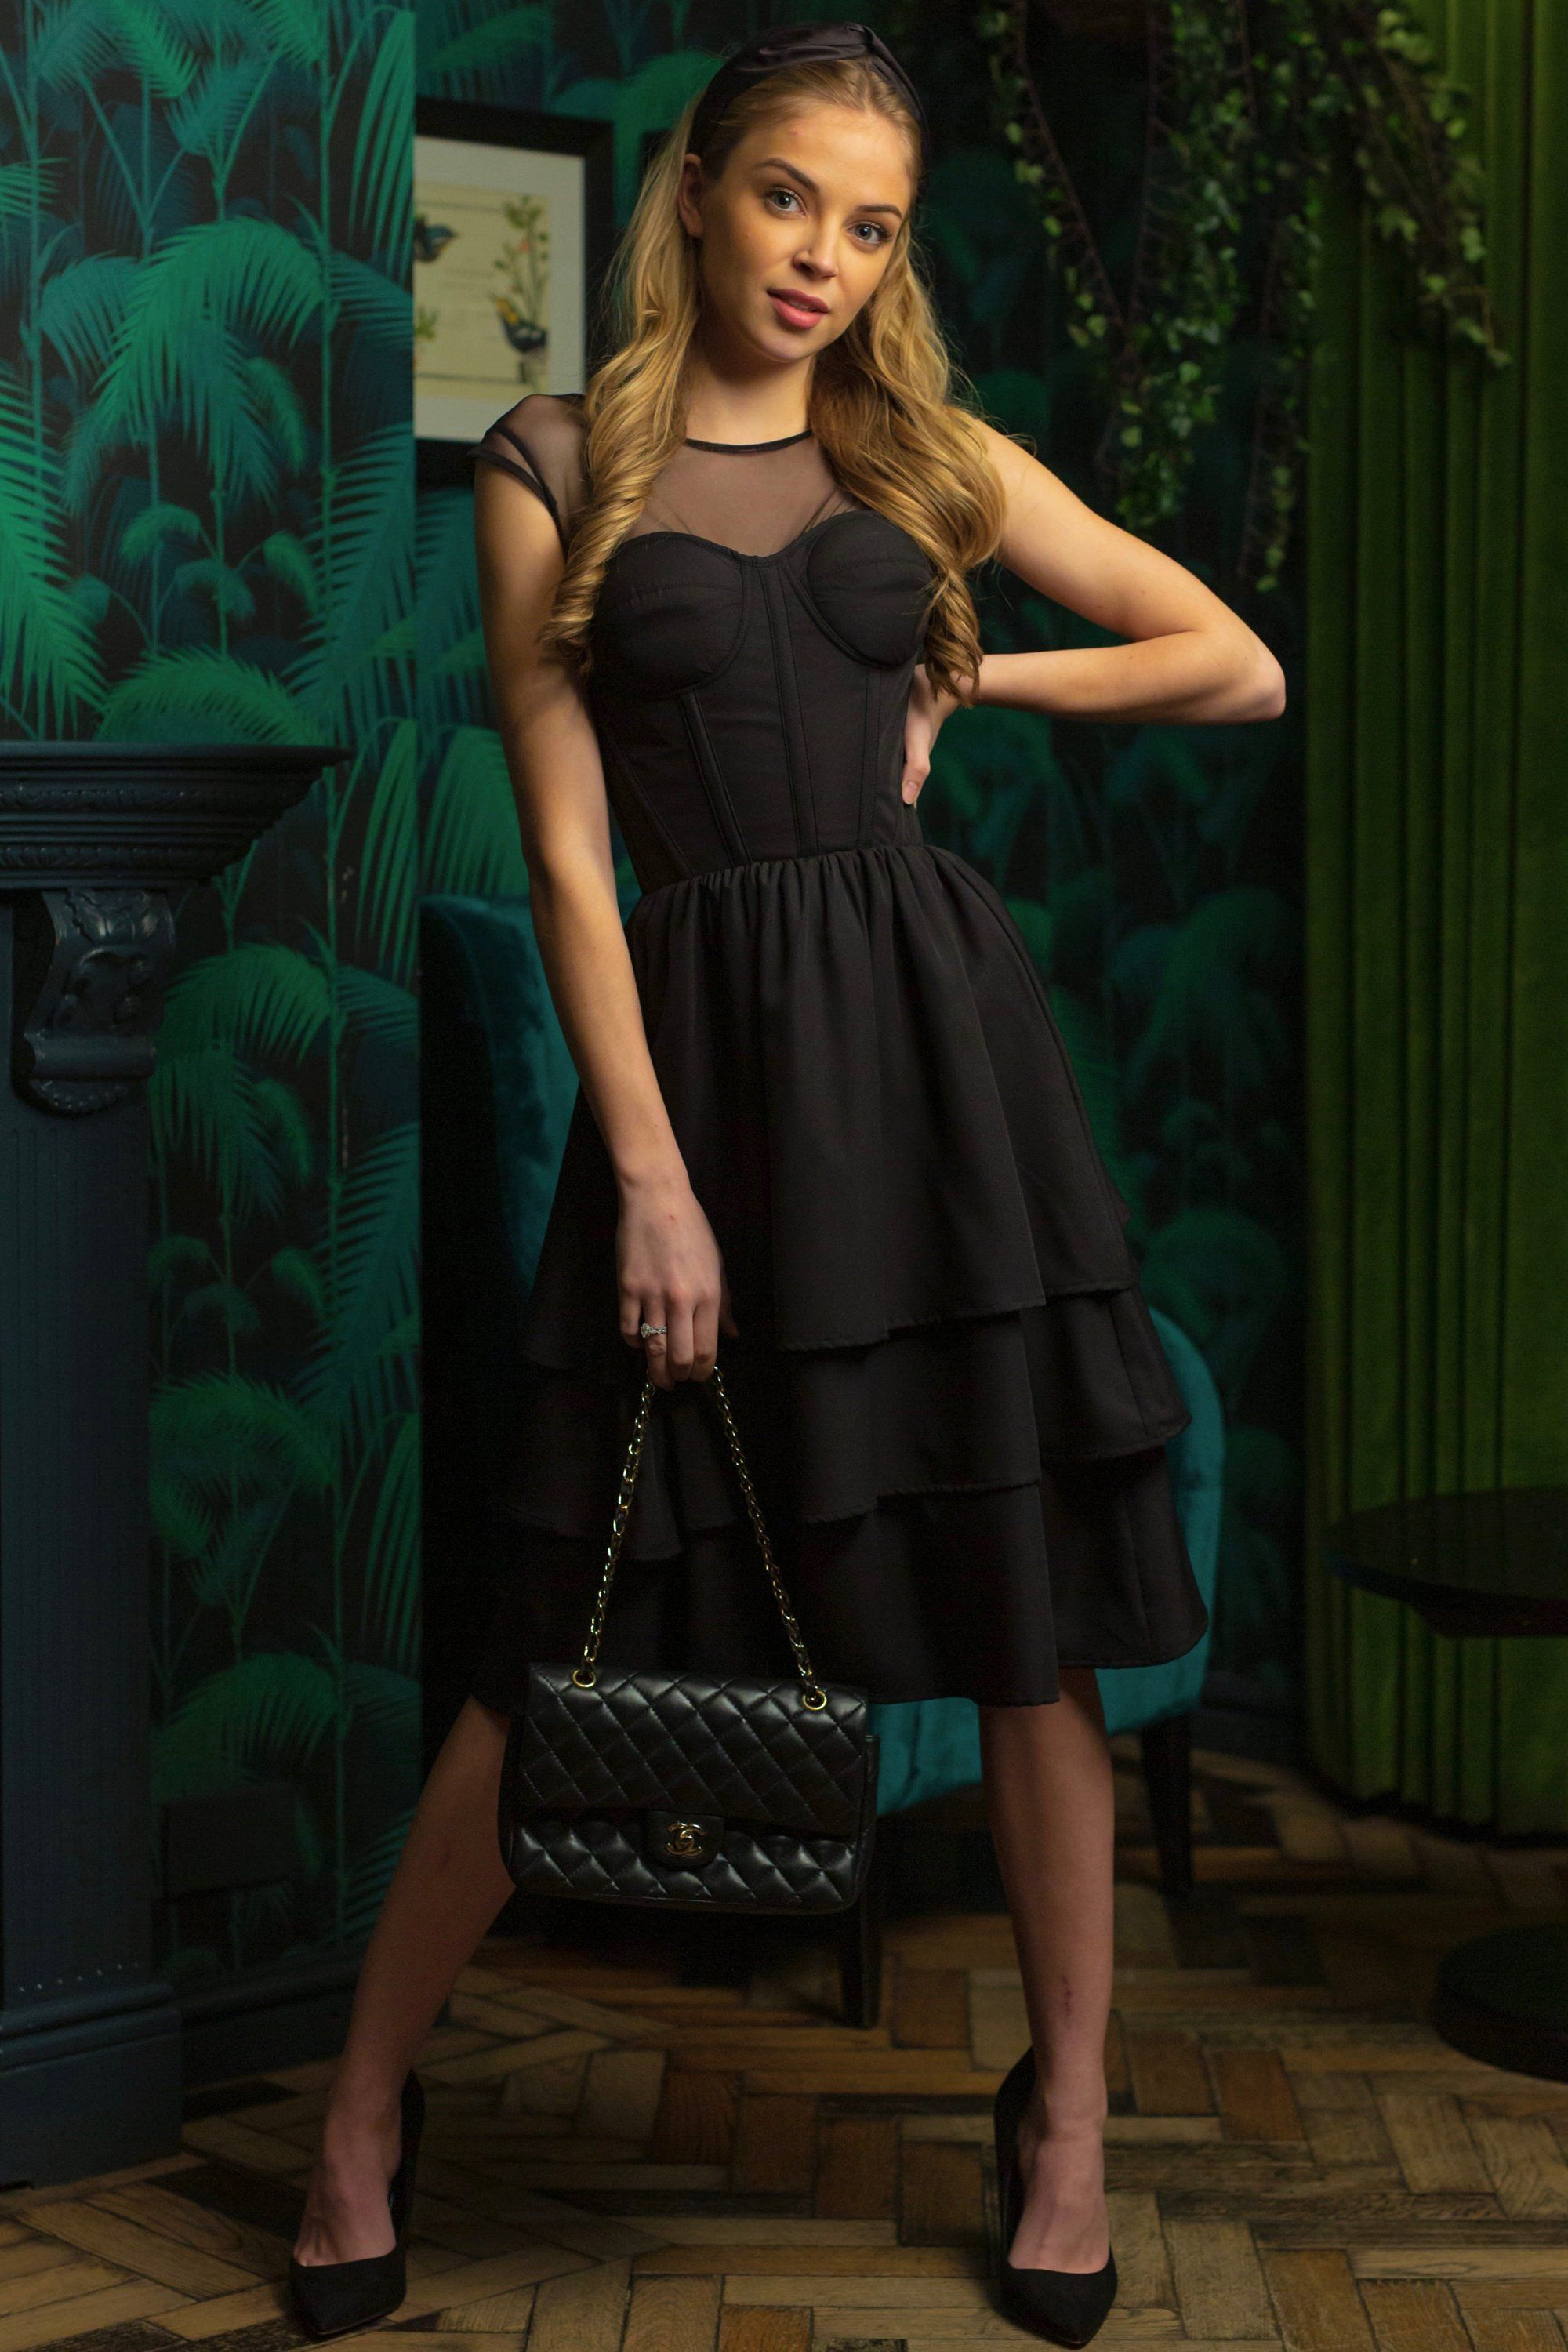 Black corset dress with mesh sleeves 24 in 2020 black